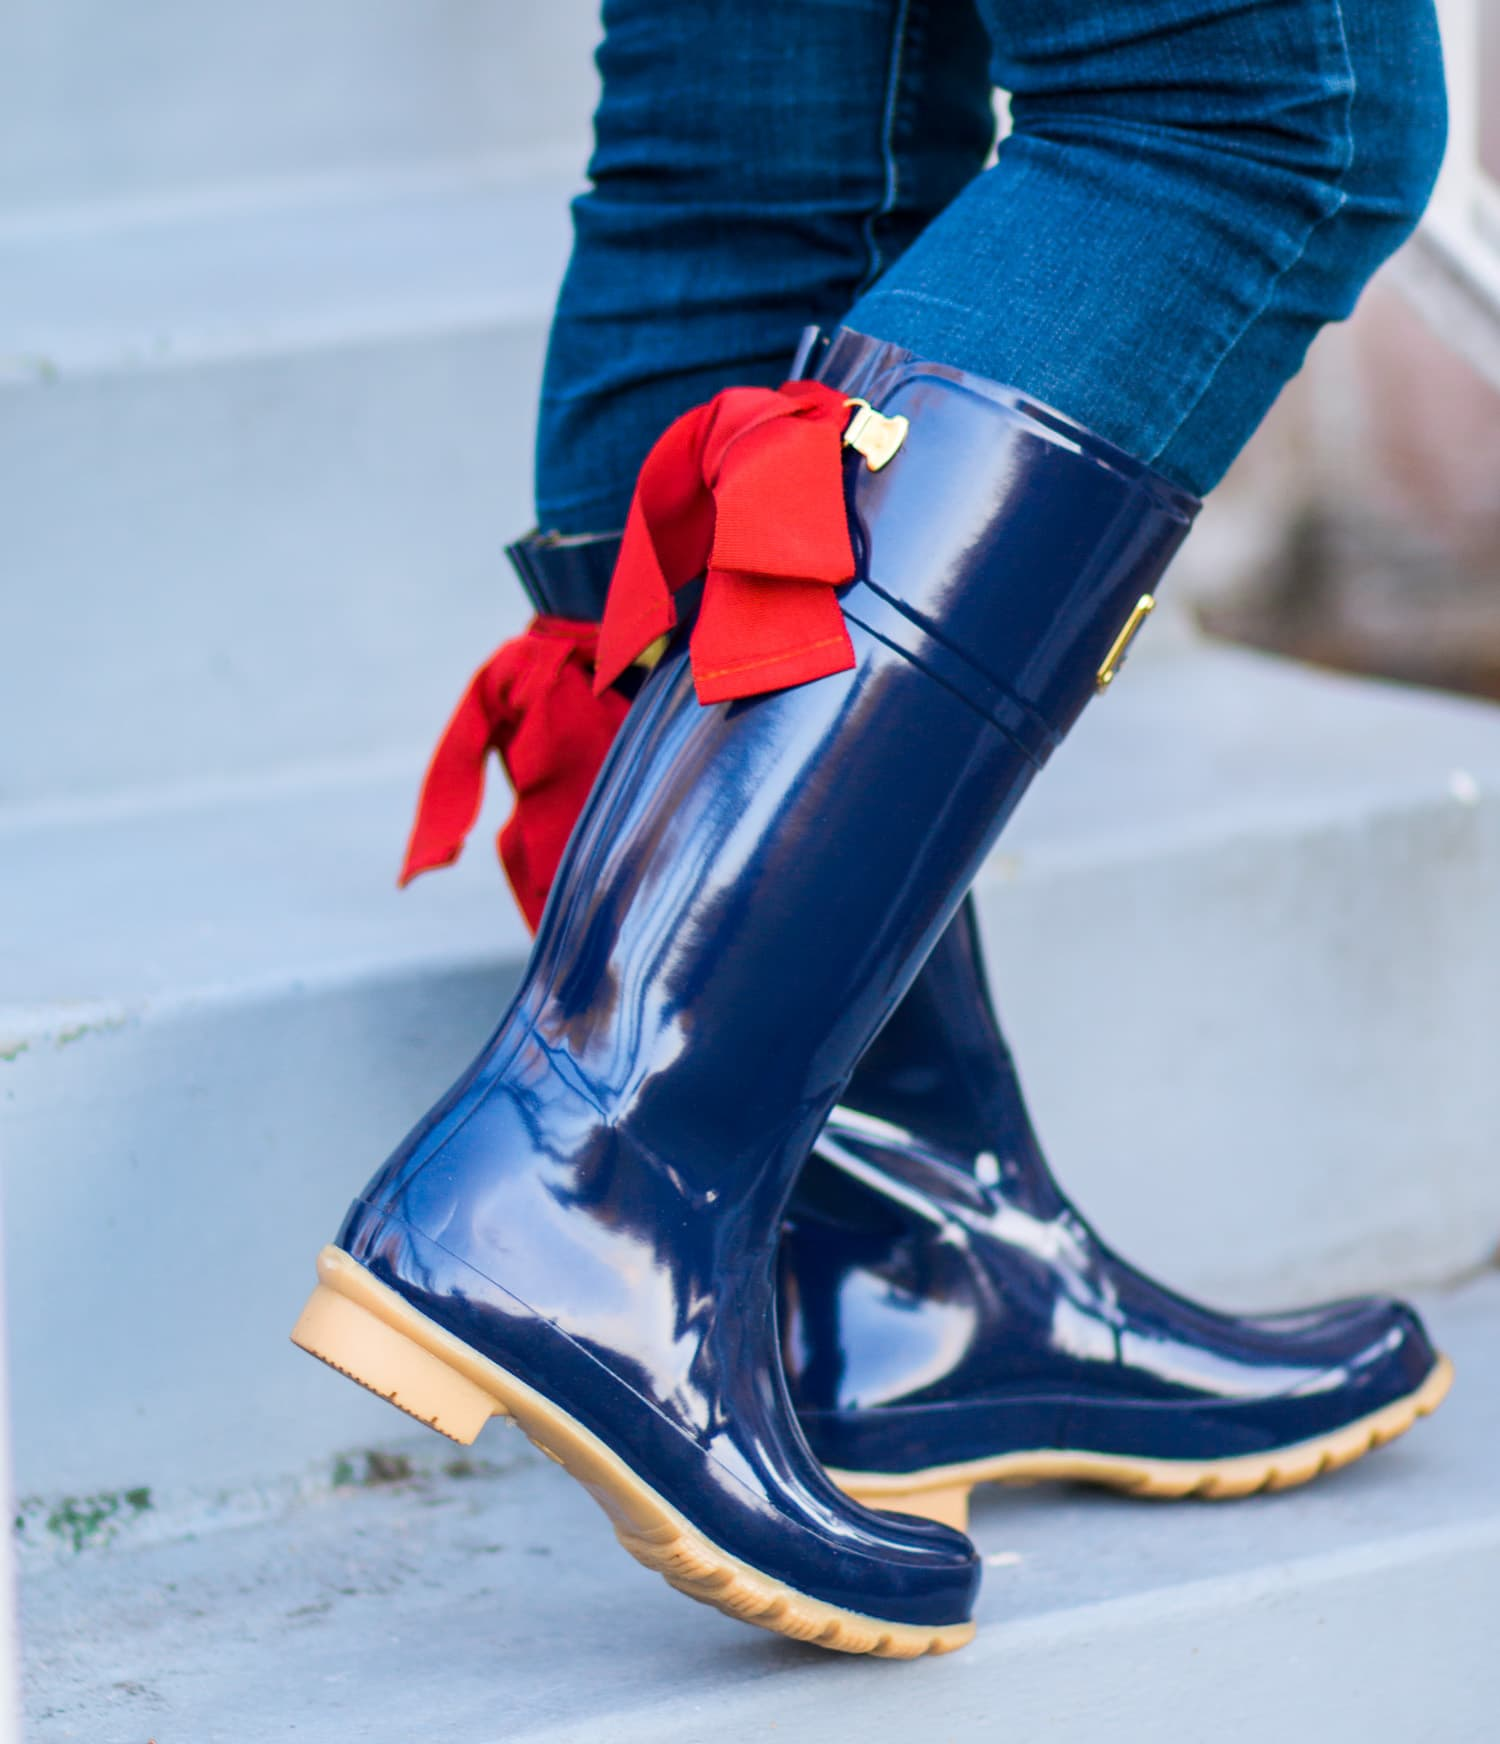 joules-evedon-rainboots-navy-red-bow-6572